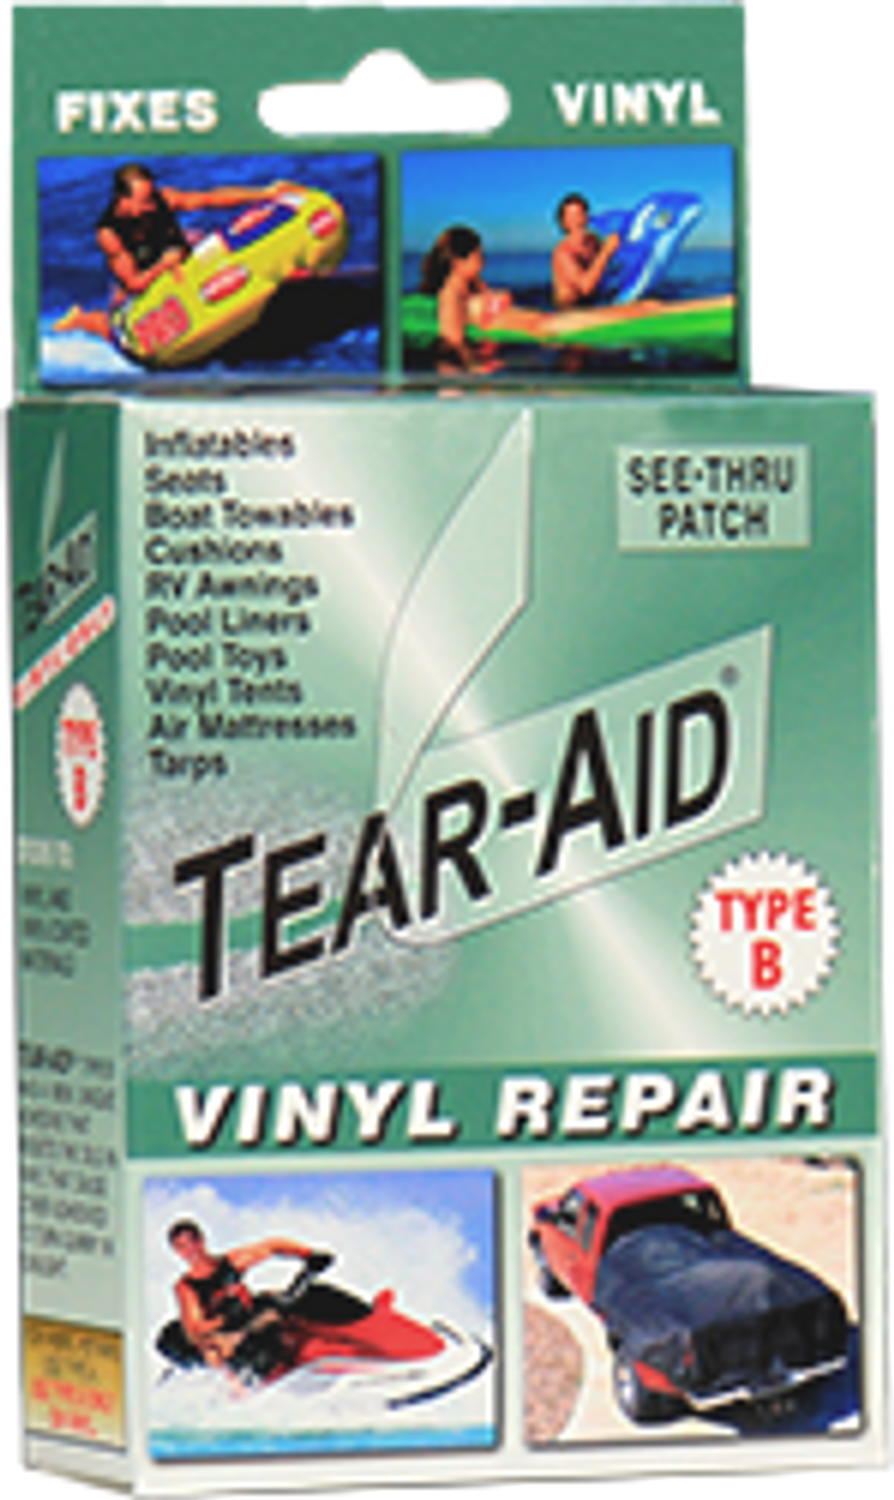 TEAR-AID Green/Vinyl Repair Kit